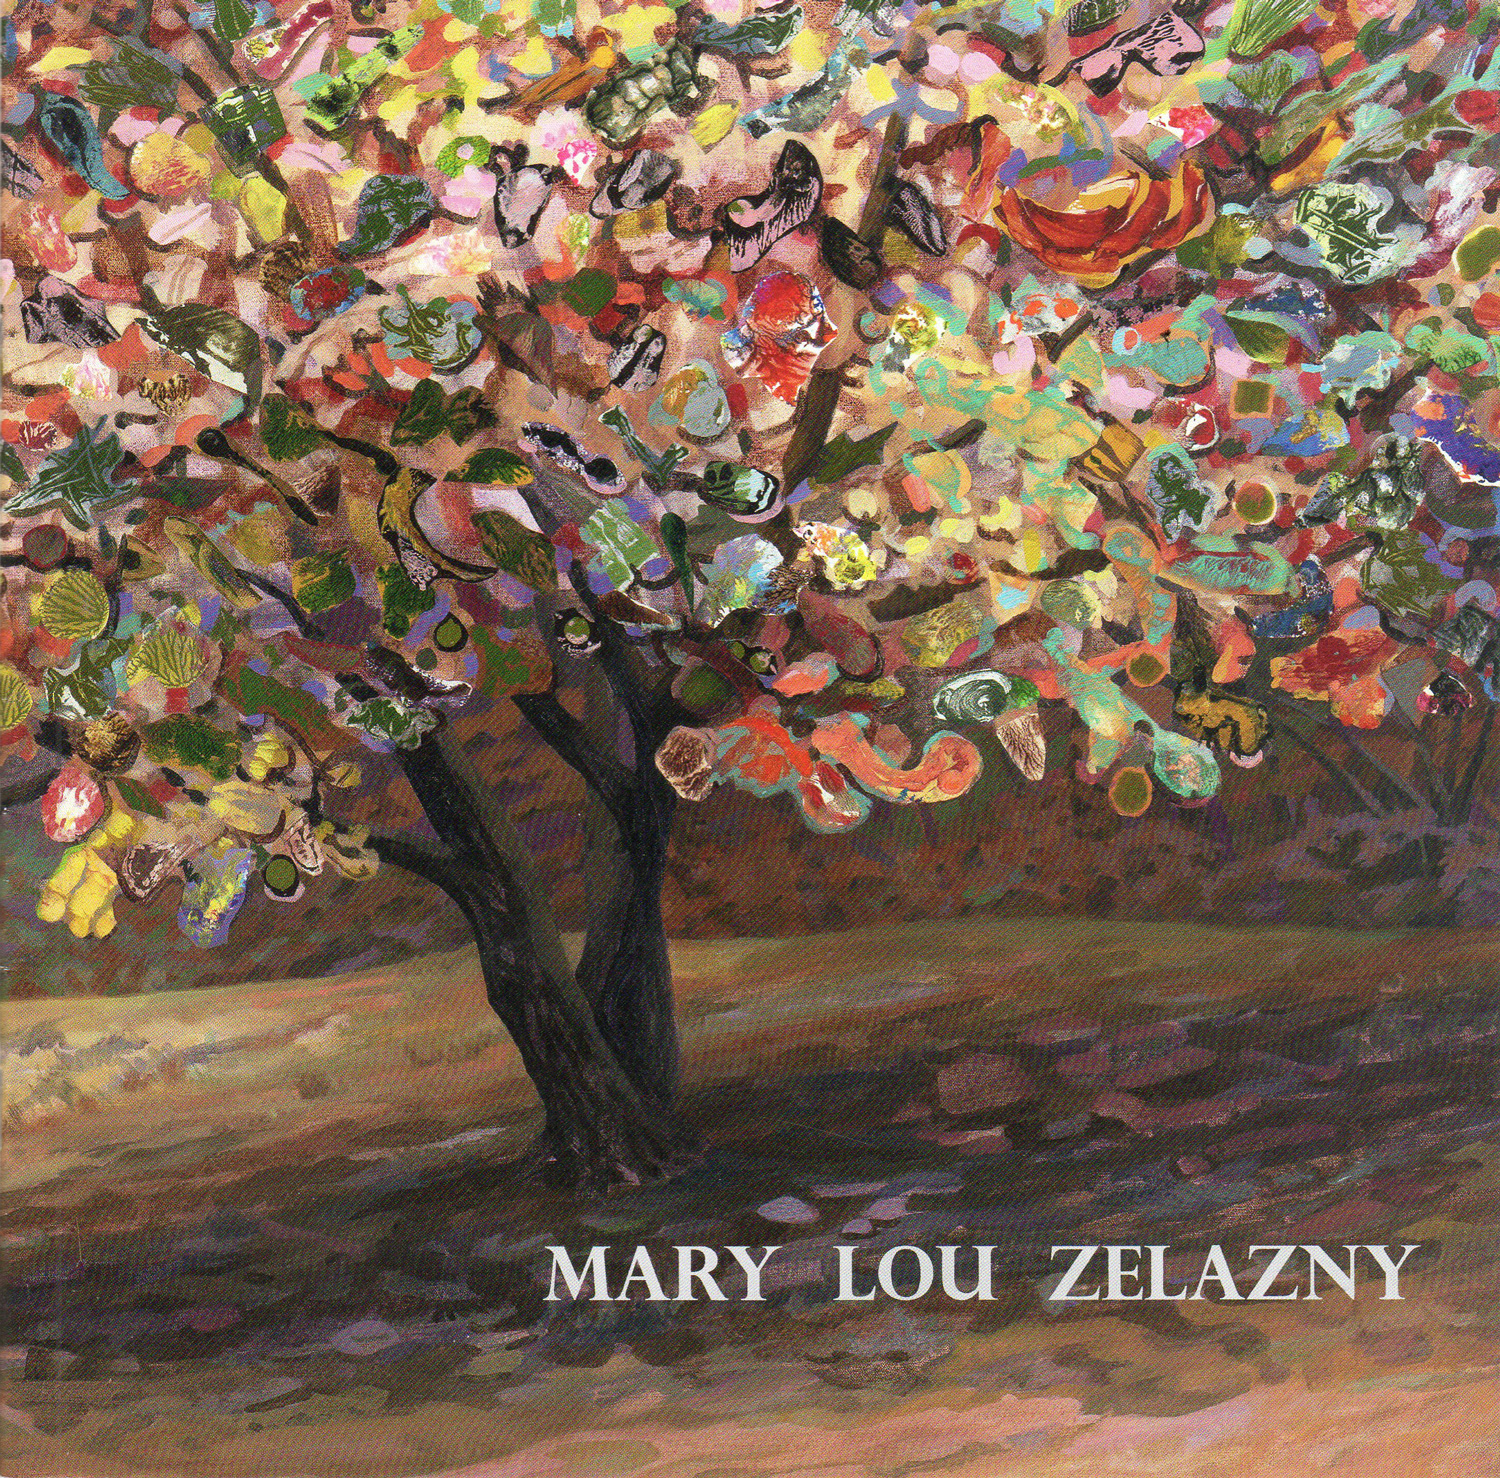 Mary Lou Zelazny.  This catalog includes a brief survey of Zelazny's work from 2017.